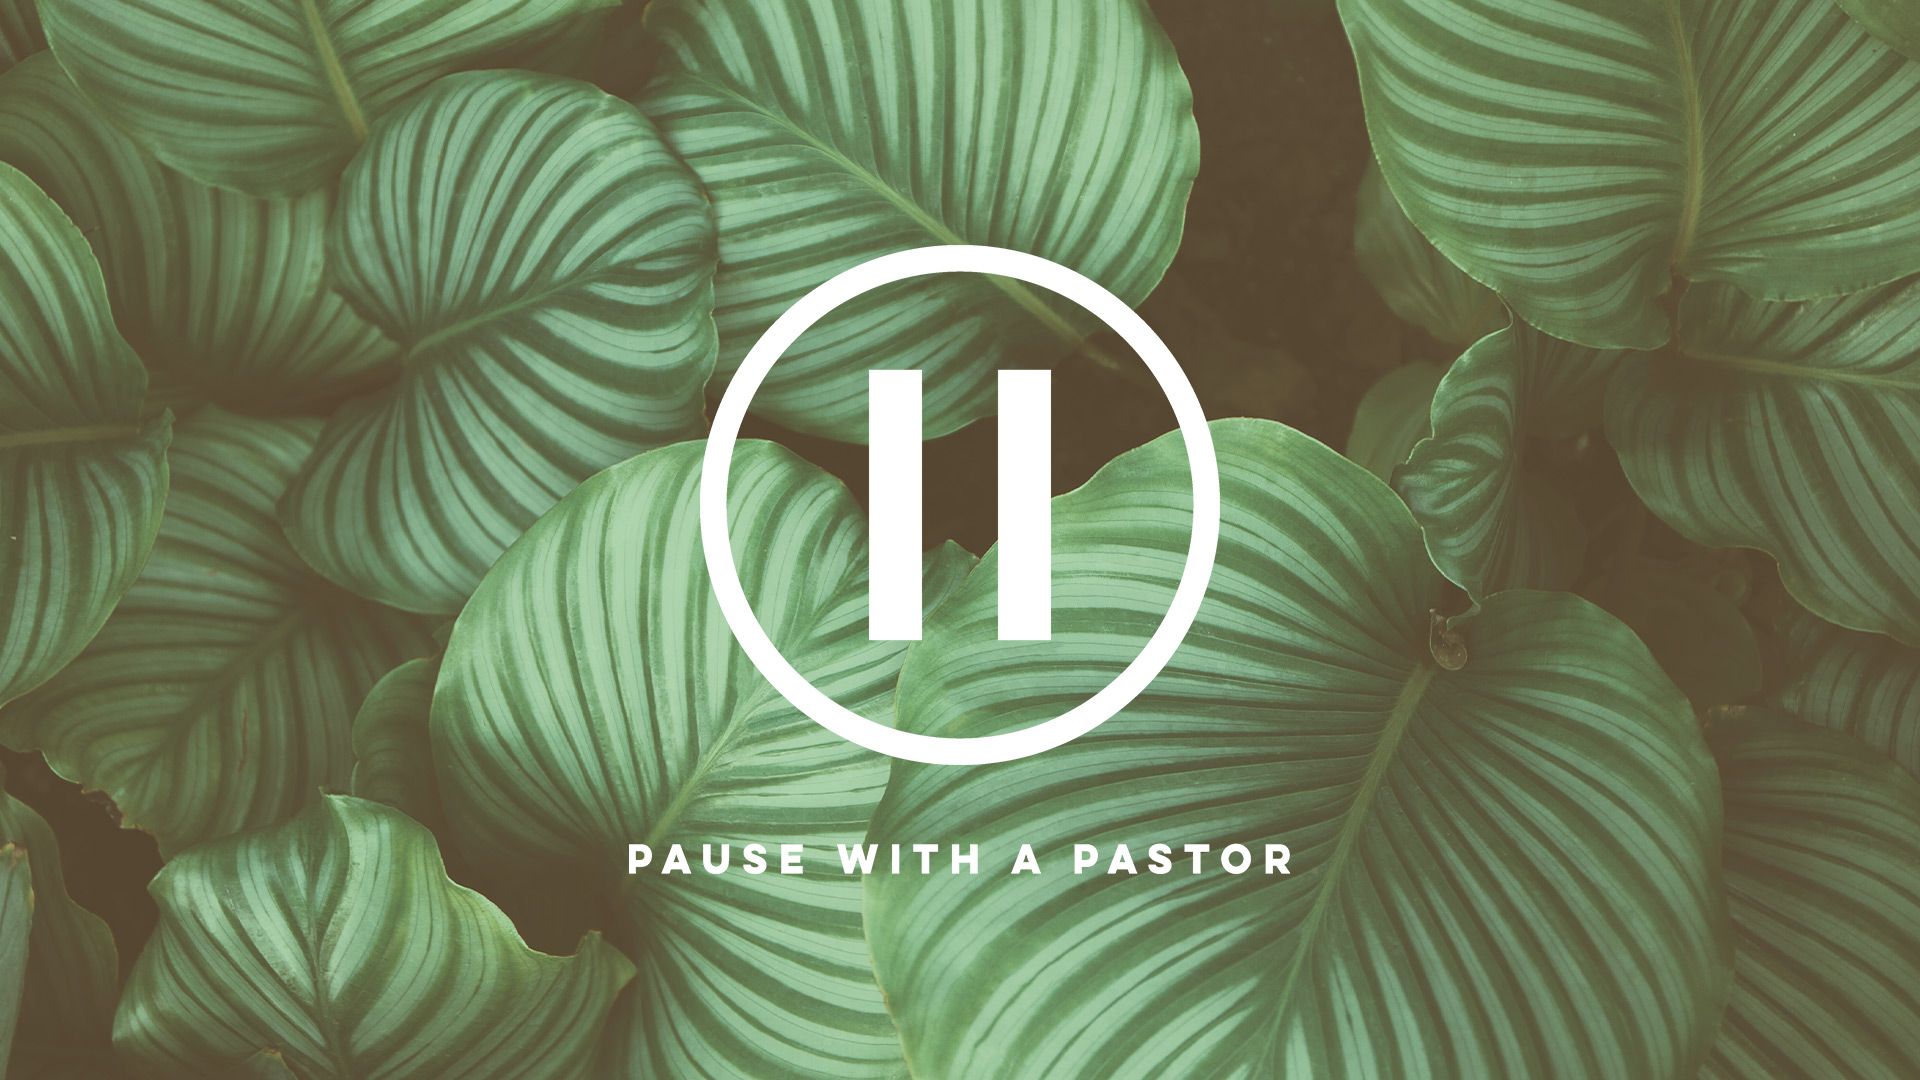 200407-Pause-with-a-Pastor-16x9